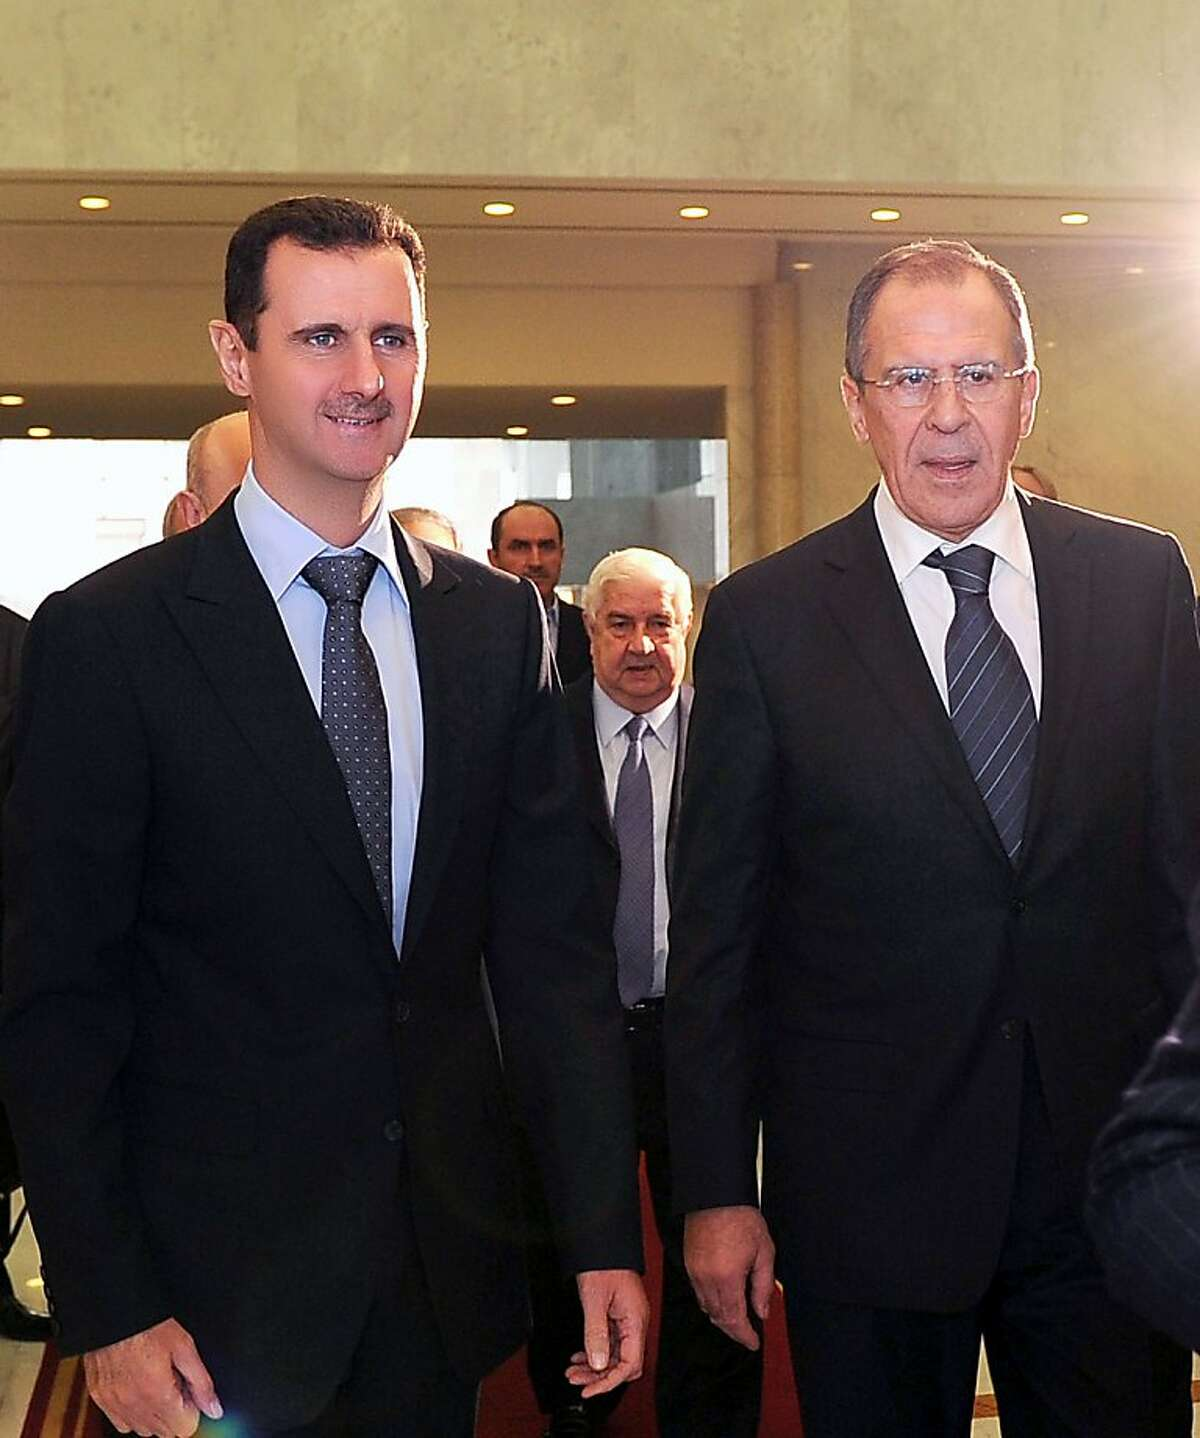 A handout picture released by the Syrian Arab News Agency (SANA) shows Syria's President Bashar al-Assad (L) walking along side Russian Foreign Minister Sergei Lavrov upong his arival at the presidential palace in Damascus for talks on February 7, 2012. Lavrov's trip comes days after Russia disgusted the West and Syrian opposition activists by vetoing along with China a UN Security Council resolution condemning the Assad regime's crackdown on protesters.